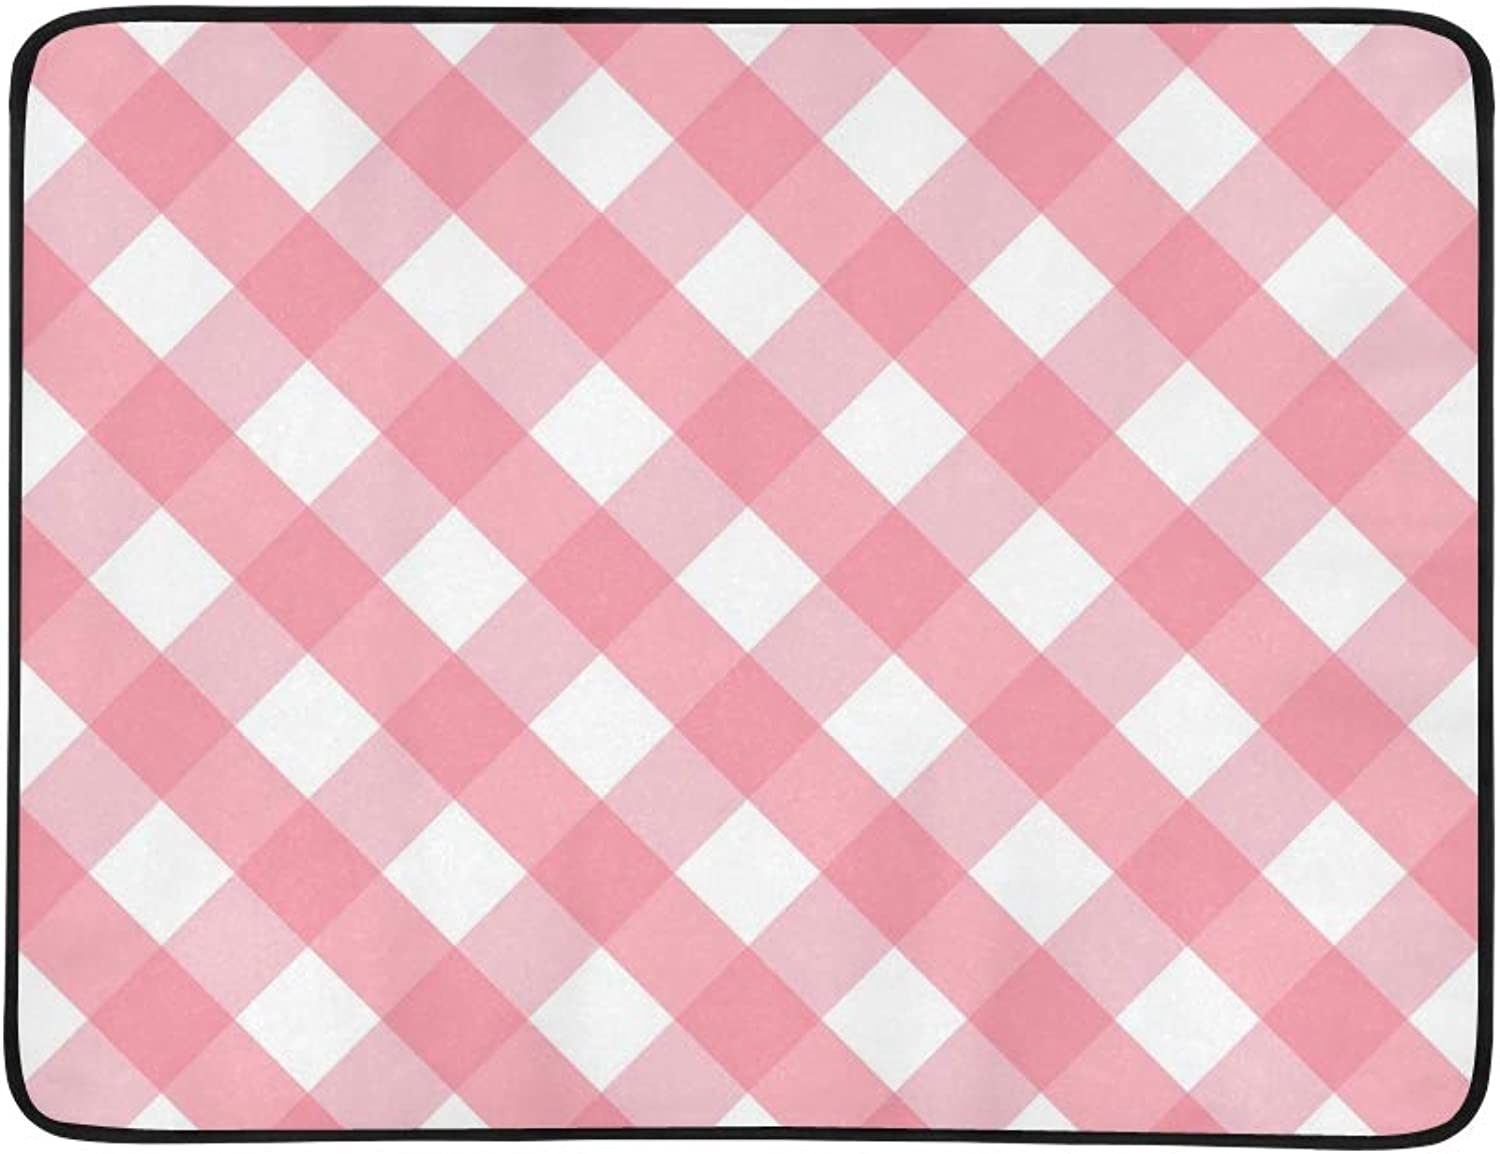 Pink Pink Traditional Gingham Portable and Foldable Blanket Mat 60x78 Inch Handy Mat for Camping Picnic Beach Indoor Outdoor Travel